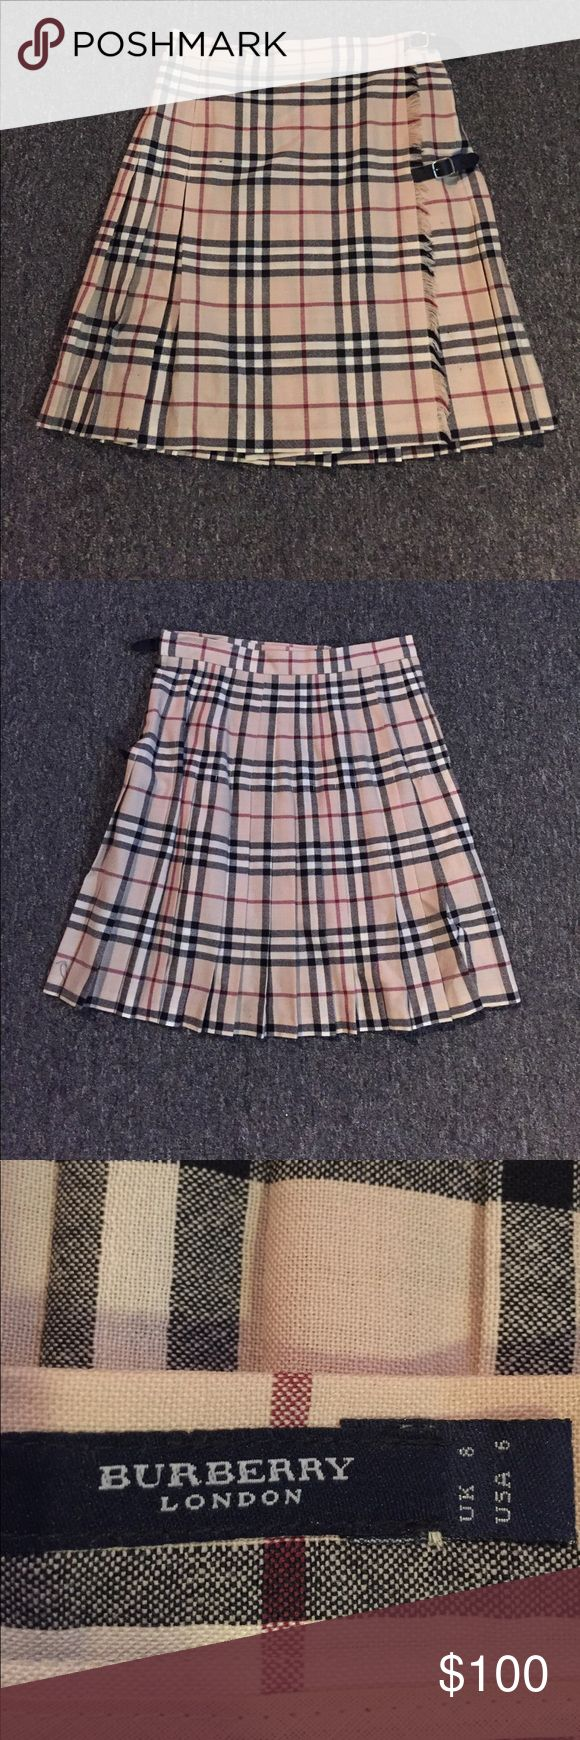 Genuine Burberry kilt. Size 6. Has flaws. This is a genuine Burberry summer weight kilt. Adjustable buckles. Kilt has minor signs of wear as shown in the fourth and fifth picture. Hardly noticeable. Beautiful kilt. Burberry Skirts